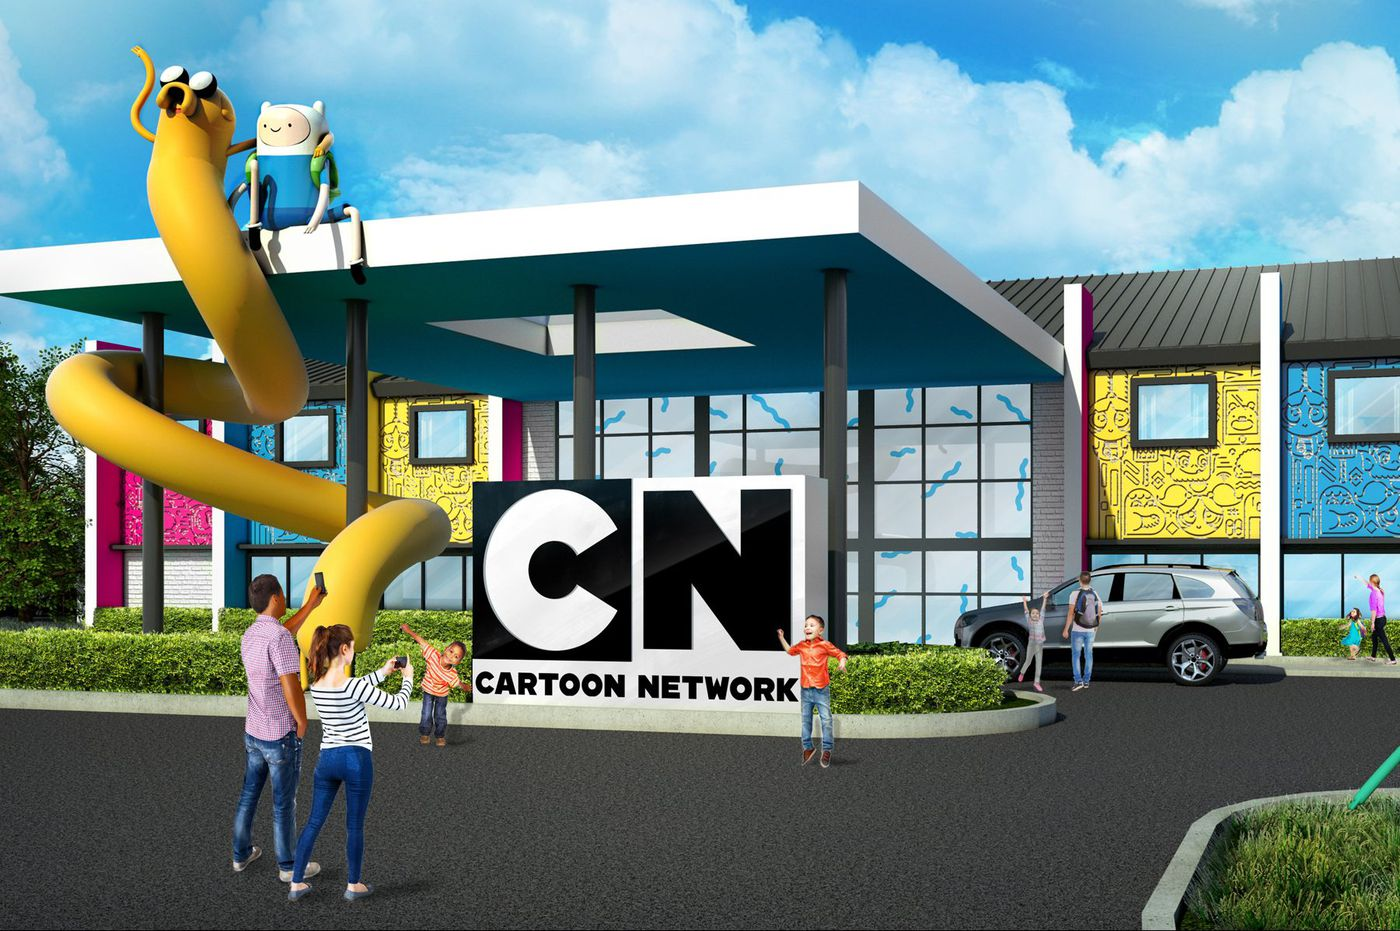 Cartoon Network To Open Animation-themed Hotel In Lancaster